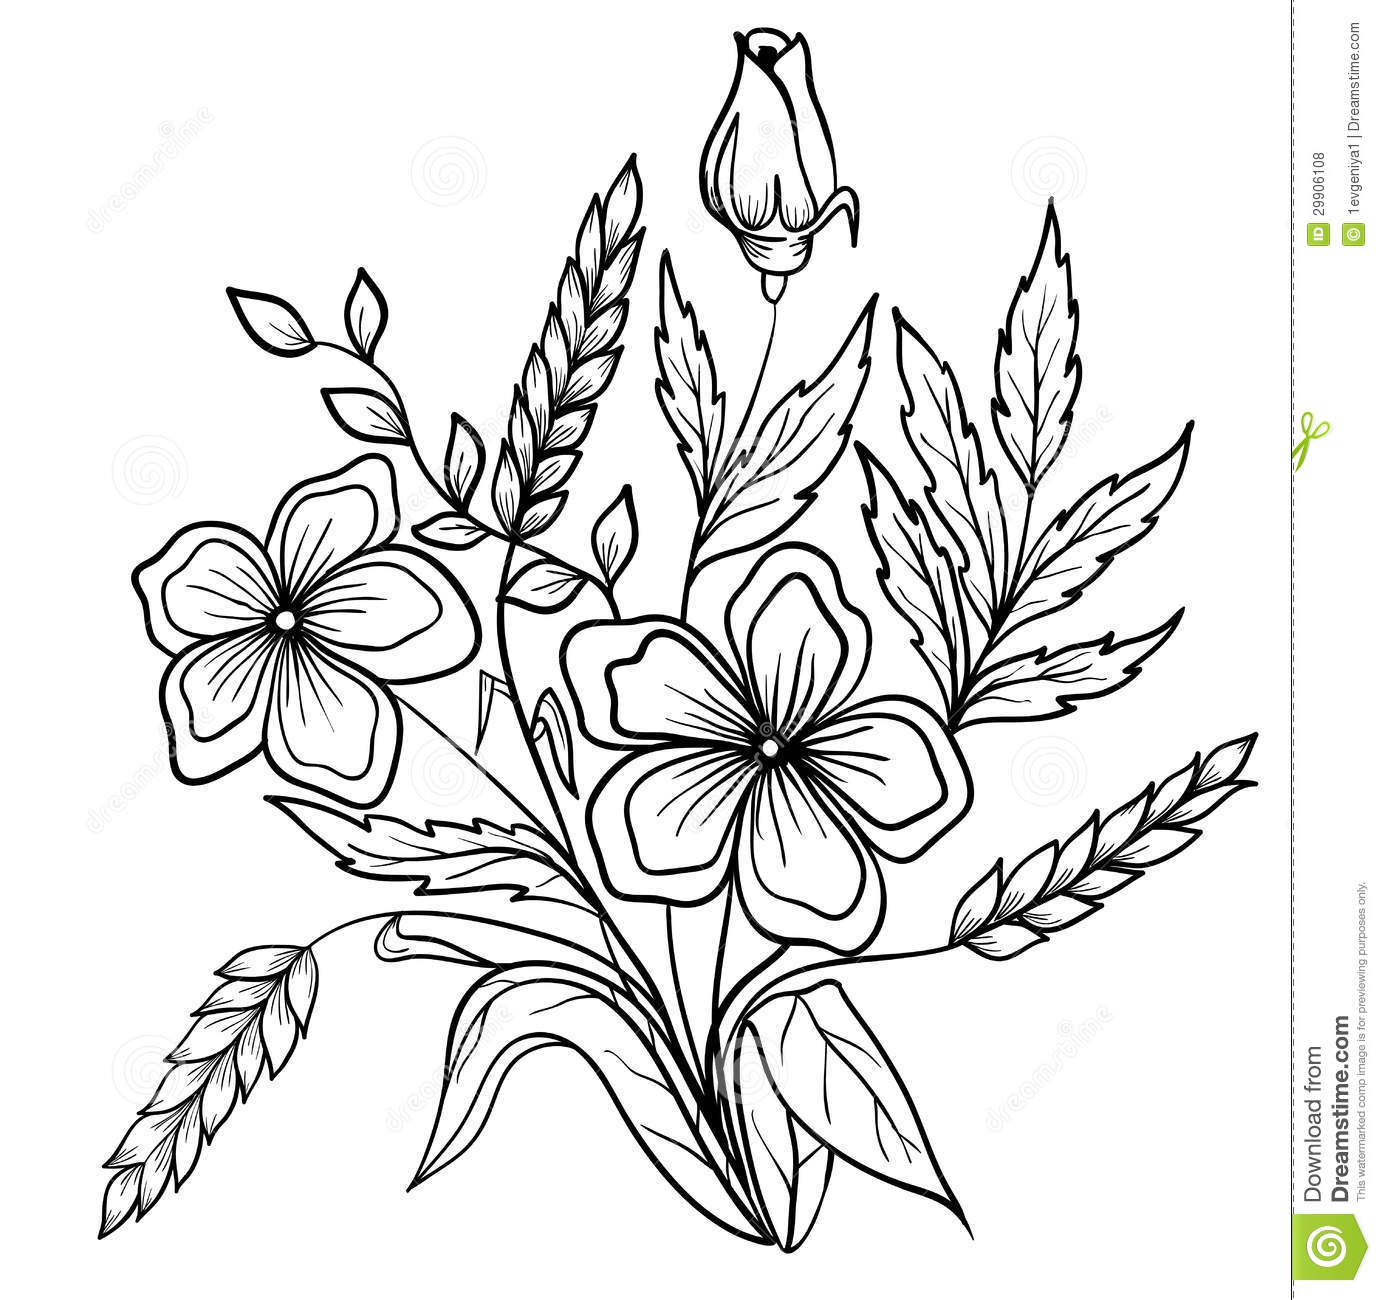 Outline Drawings